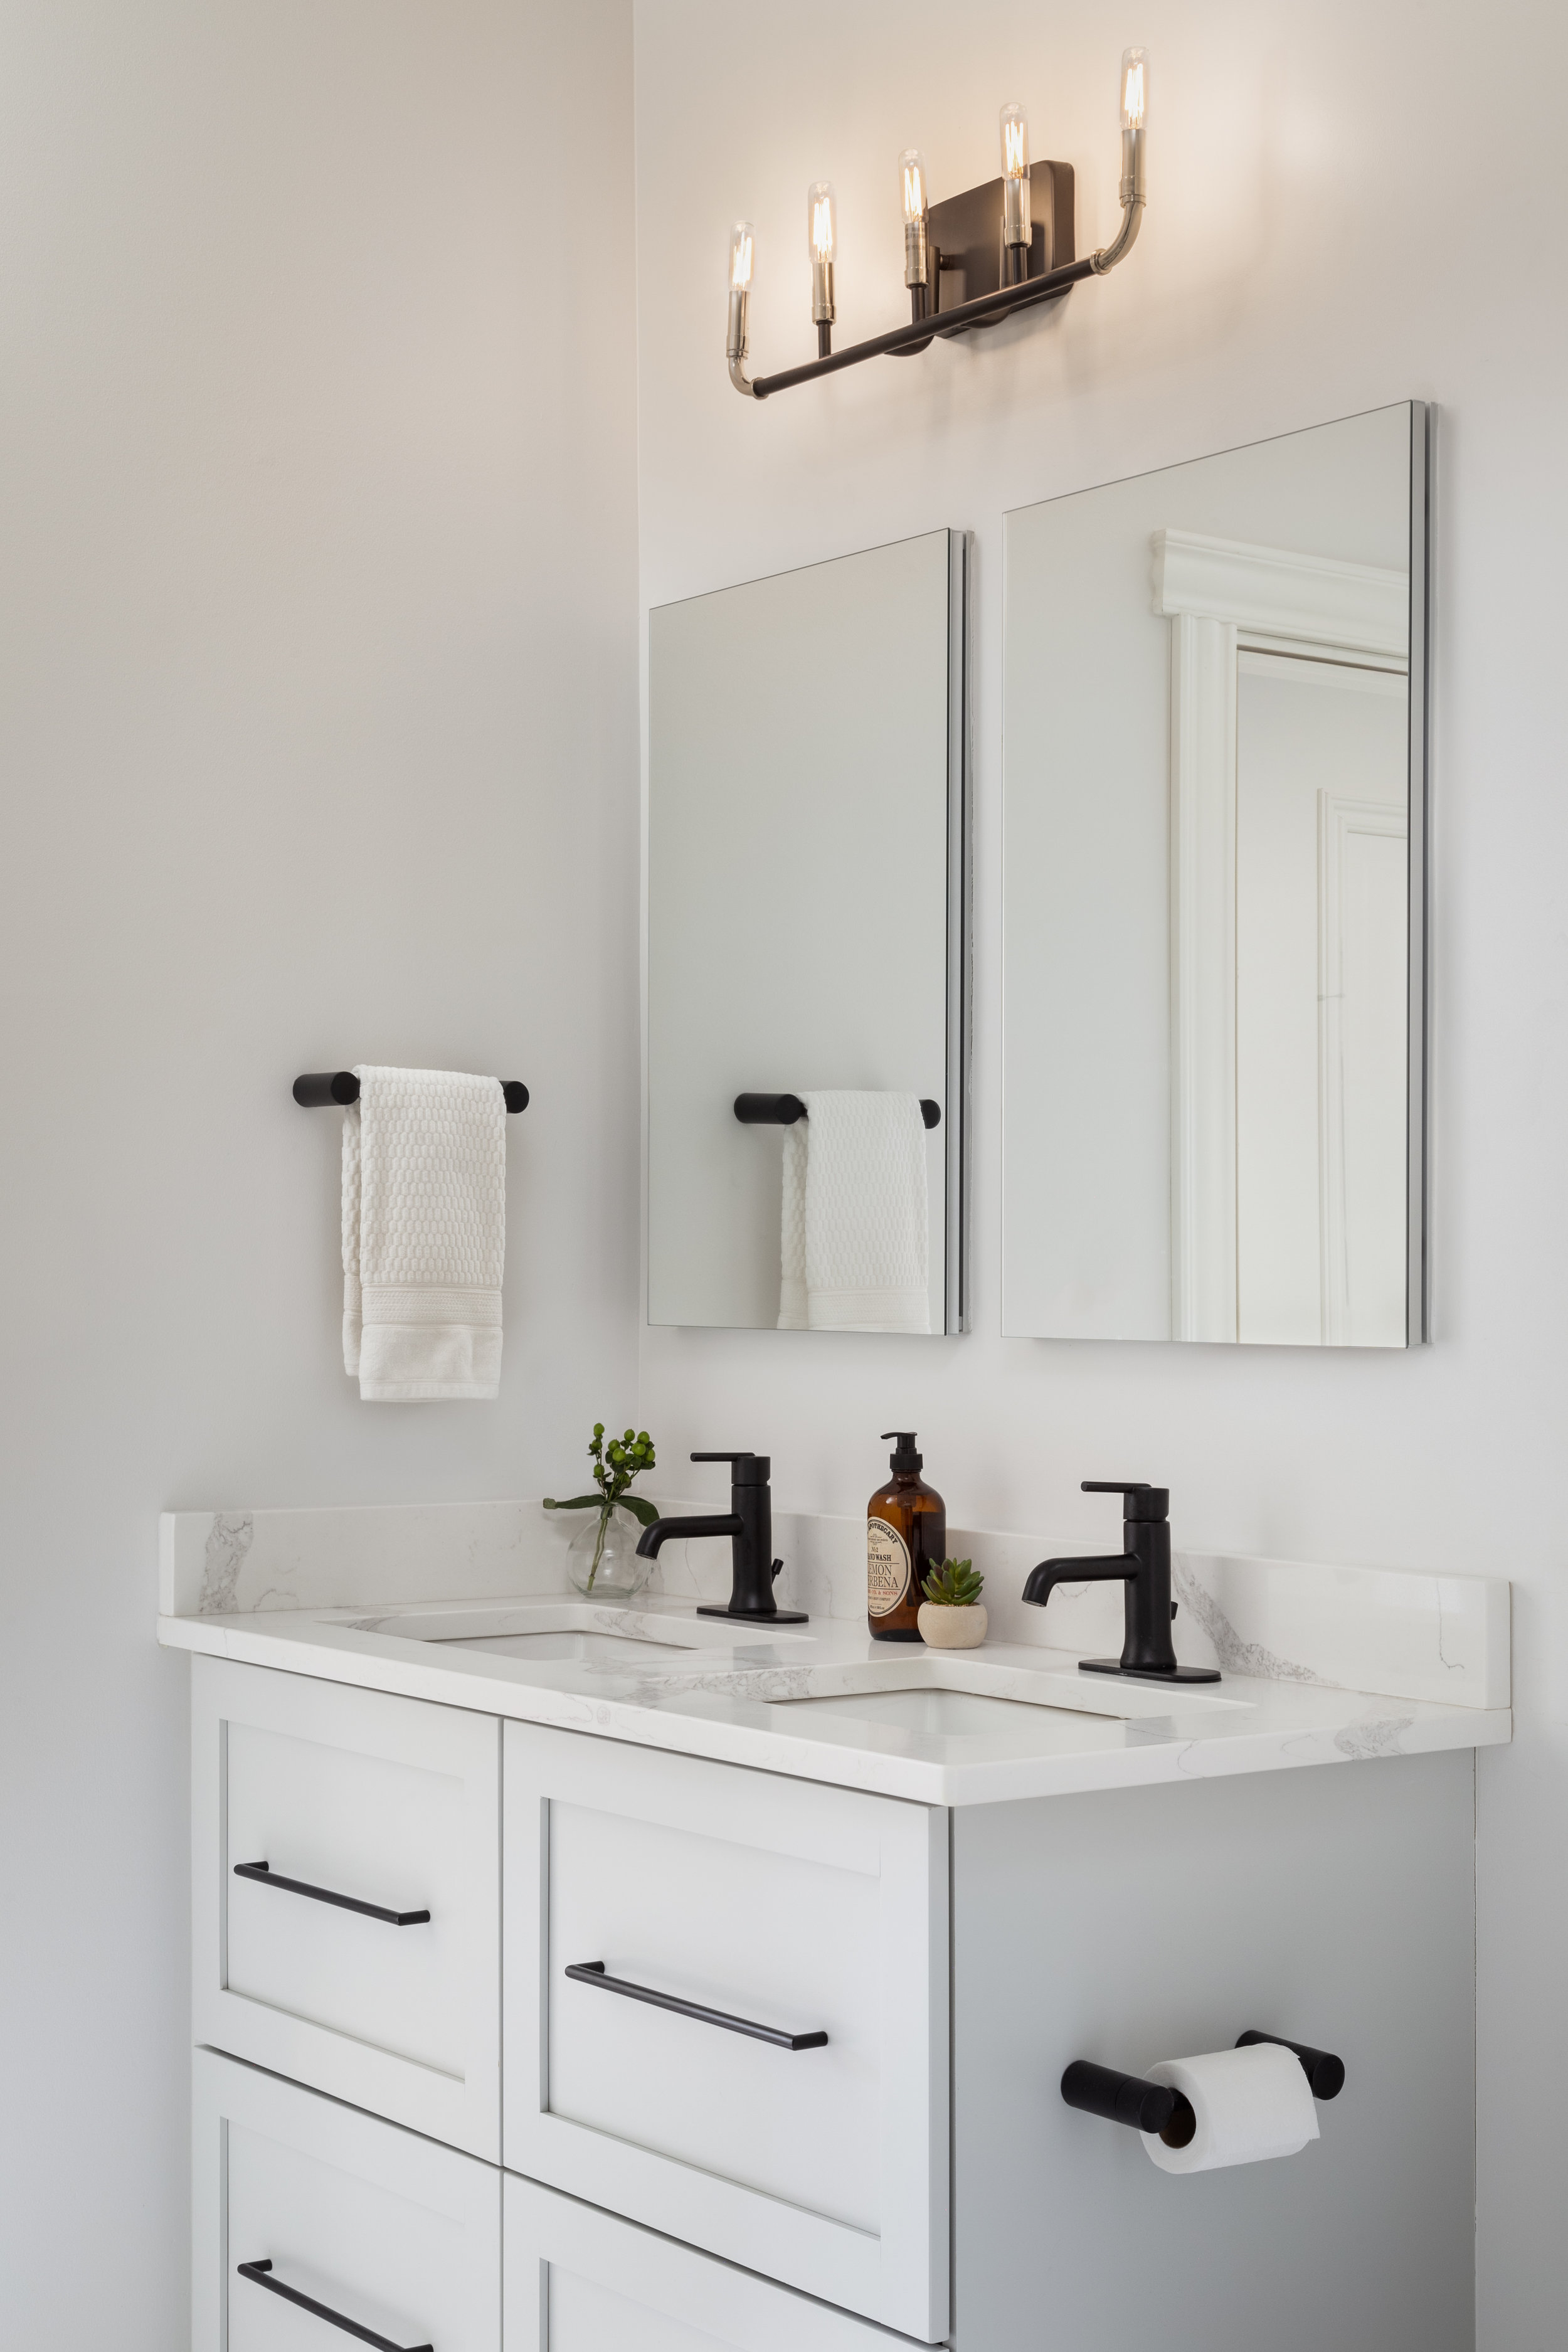 We kept the palette fresh and bright in the Jack and Jill bathroom that the two boys share. Black metal accents contrast the lighter finishes to add contrast and make it a little more masculine. We kept the cabinet profiles consistent with the kitchen cabinets to create a cohesive feel throughout the house.